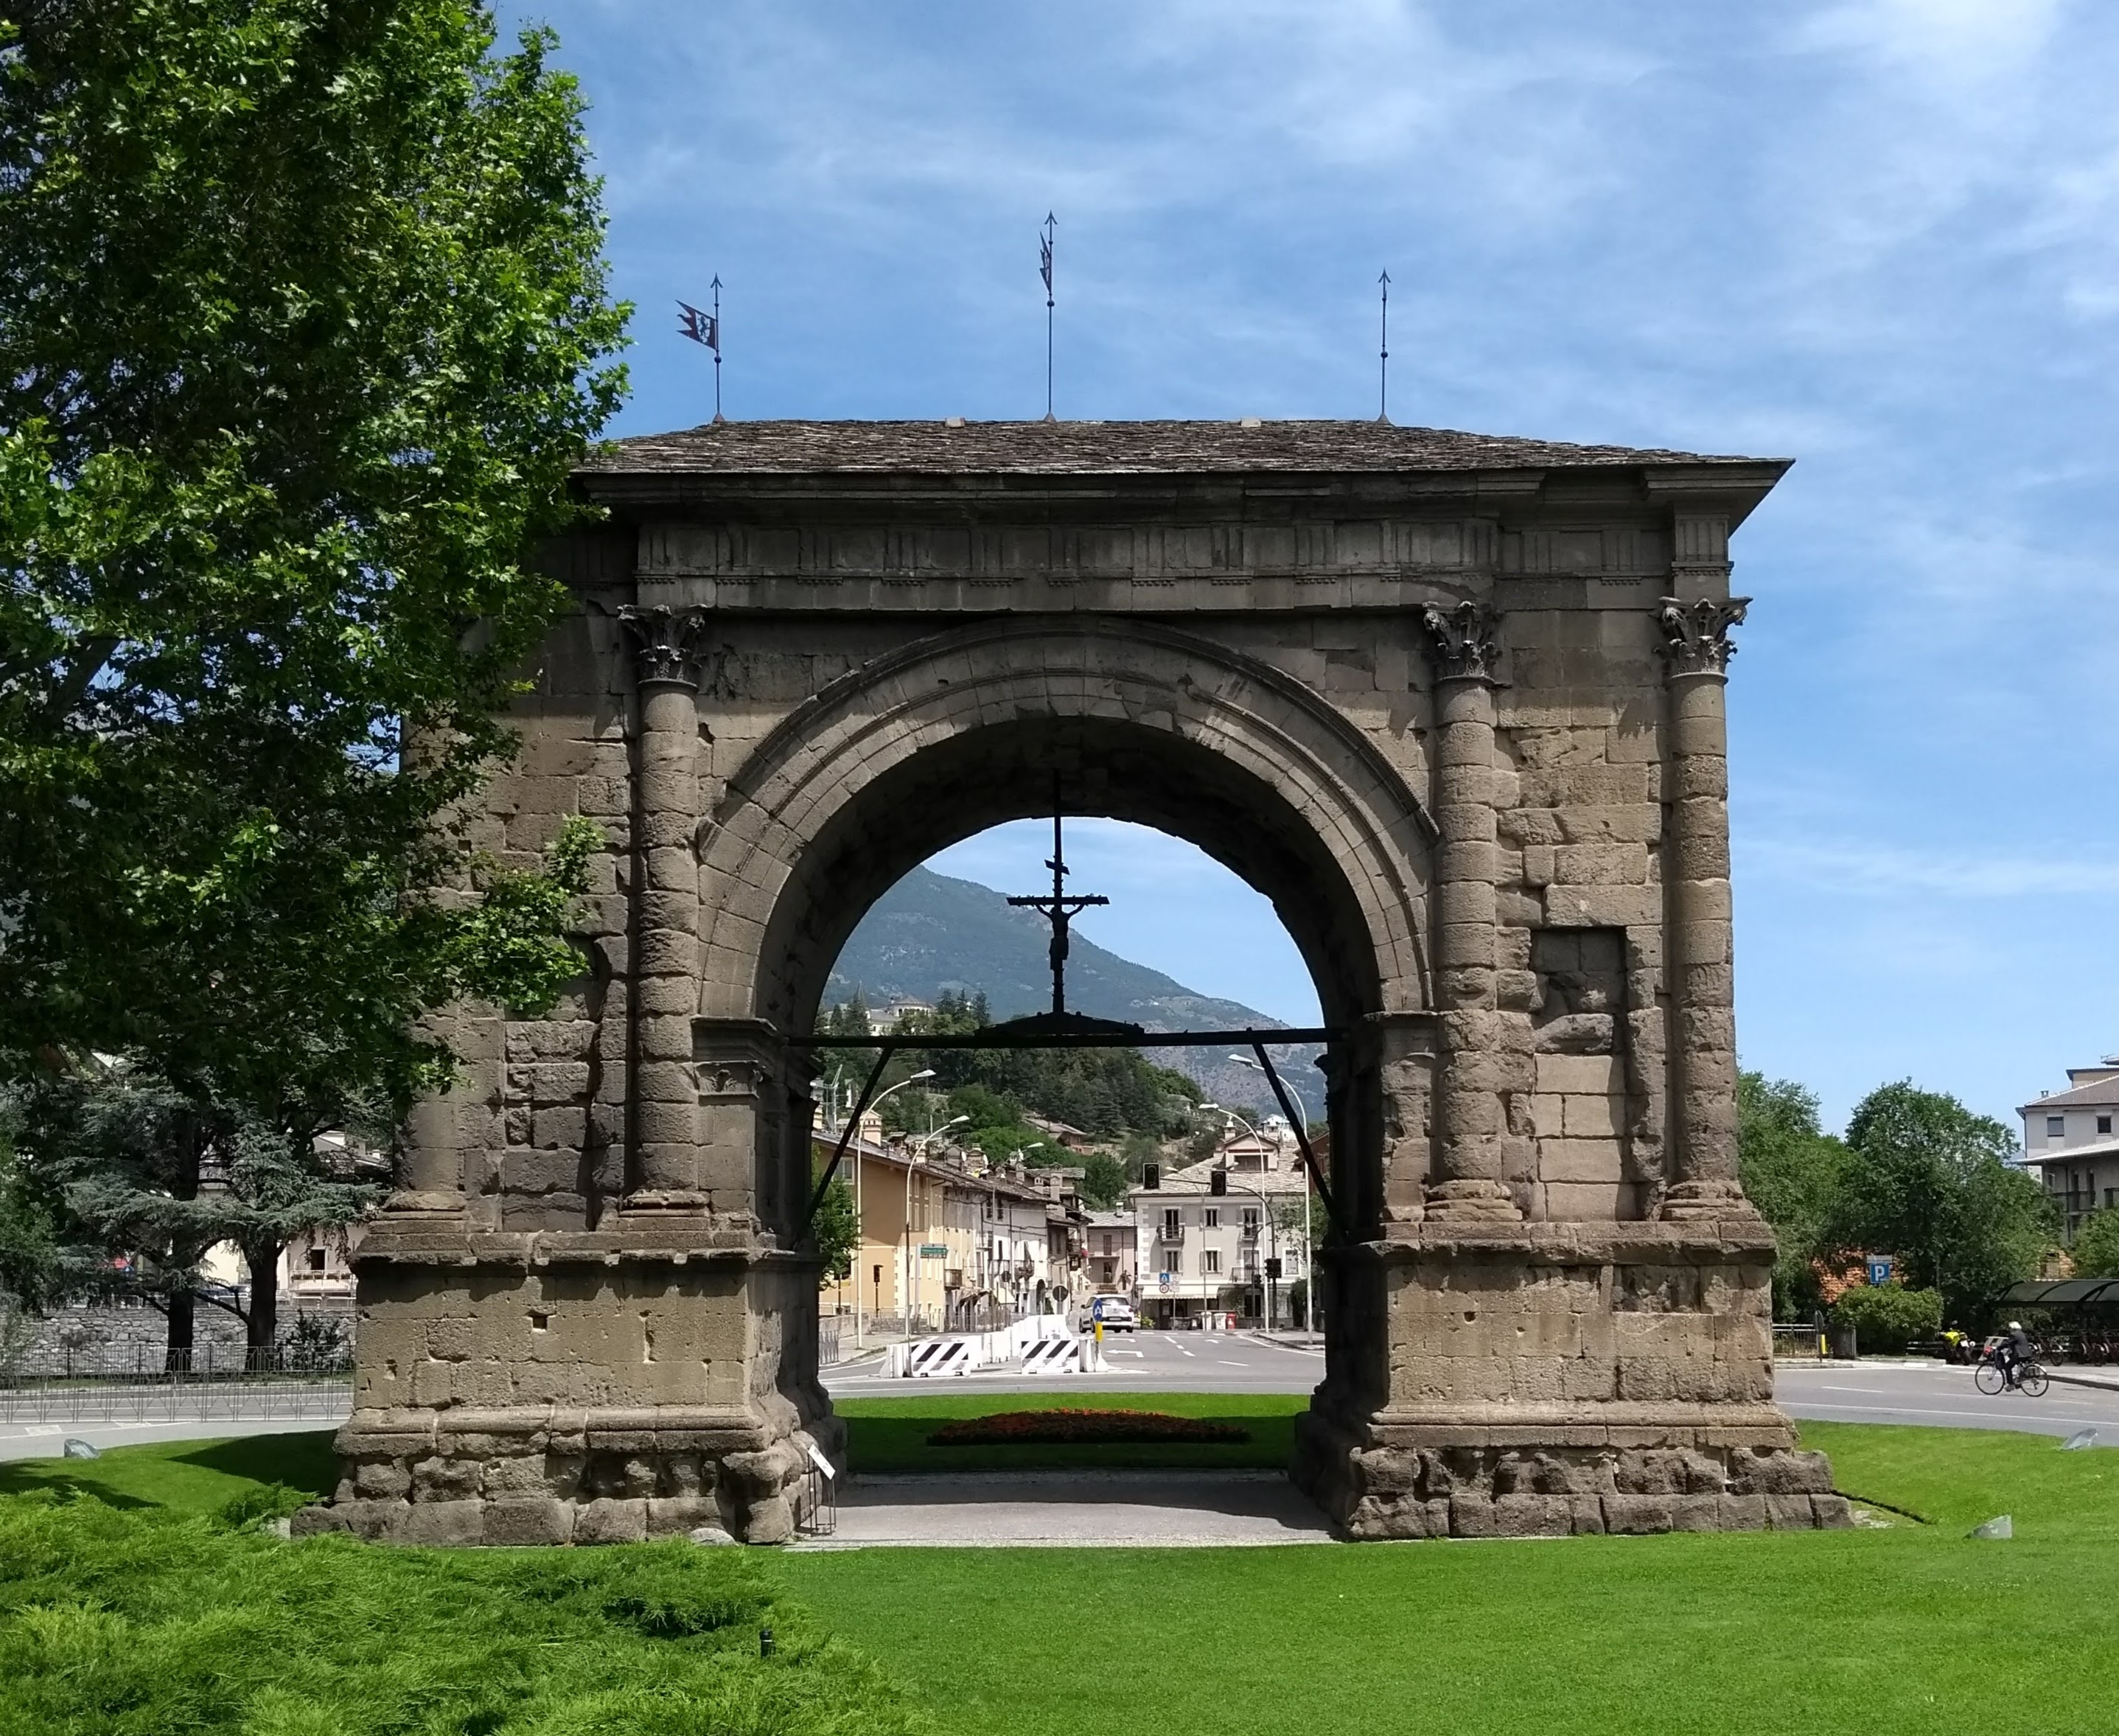 Roman arches Arch of Augustus Aosta Tour